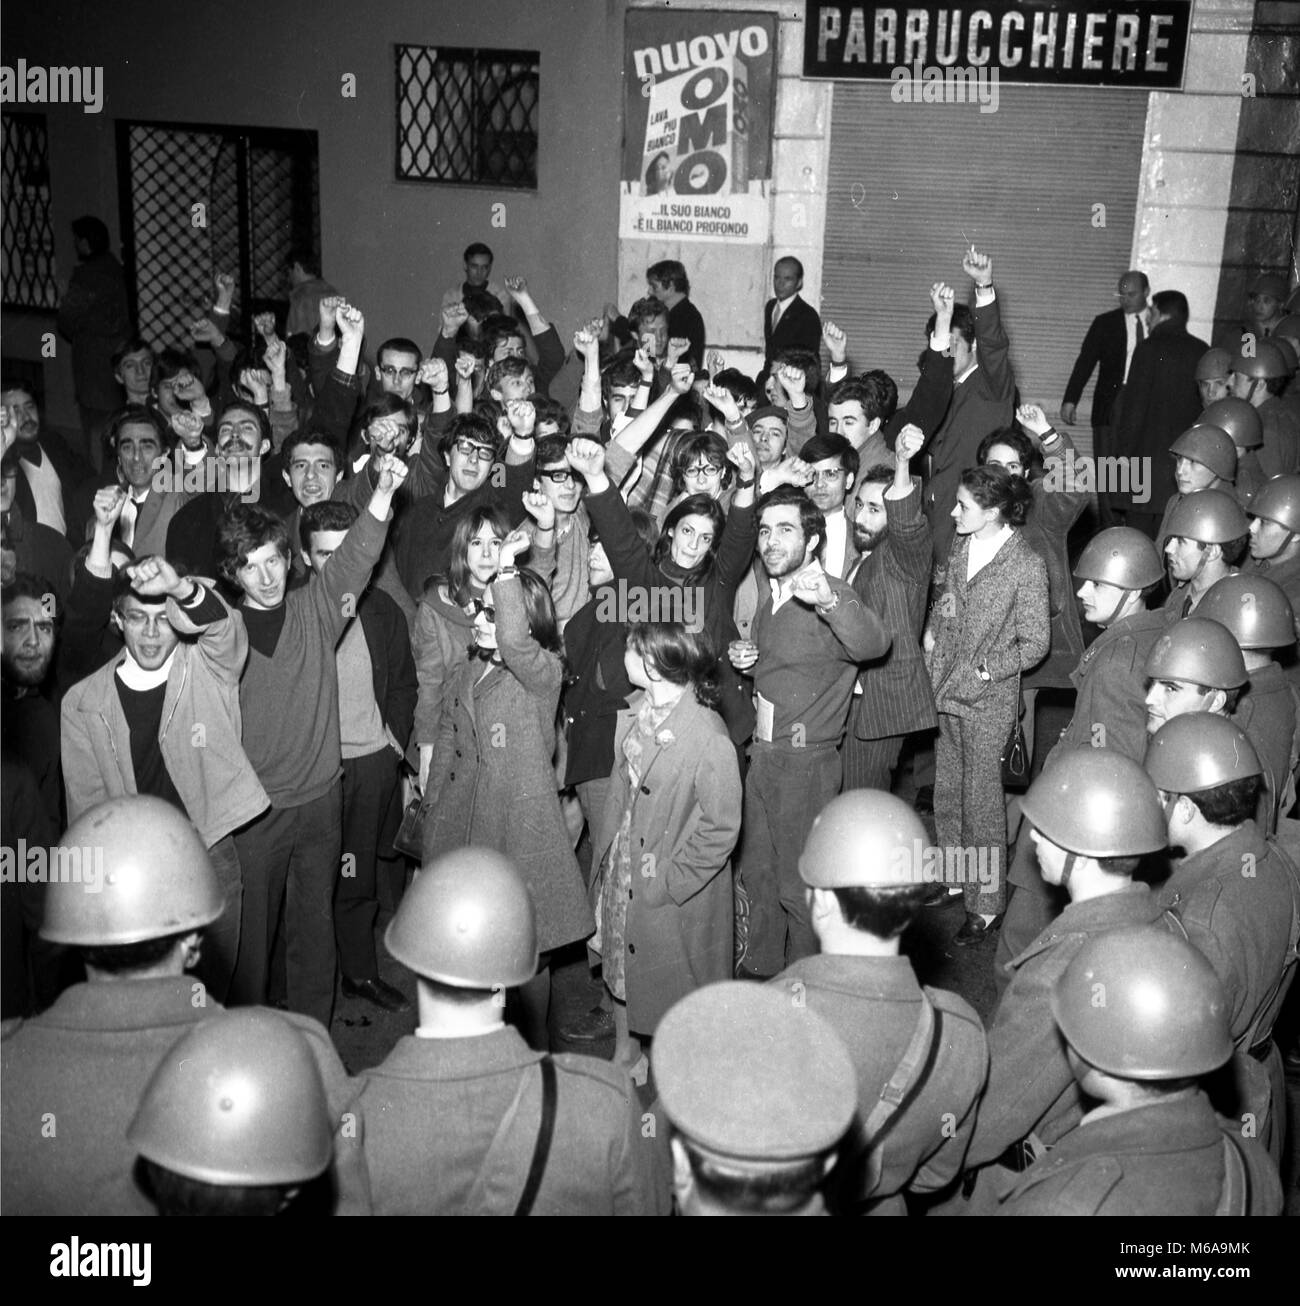 VARIOUS MANIFESTATION OF STUDENTS OF MIDDLE SCHOOLS, AND OF THE STATE UNIVERSITY, STUDENT MOVEMENT, YEAR 1968 (DE - Stock Image